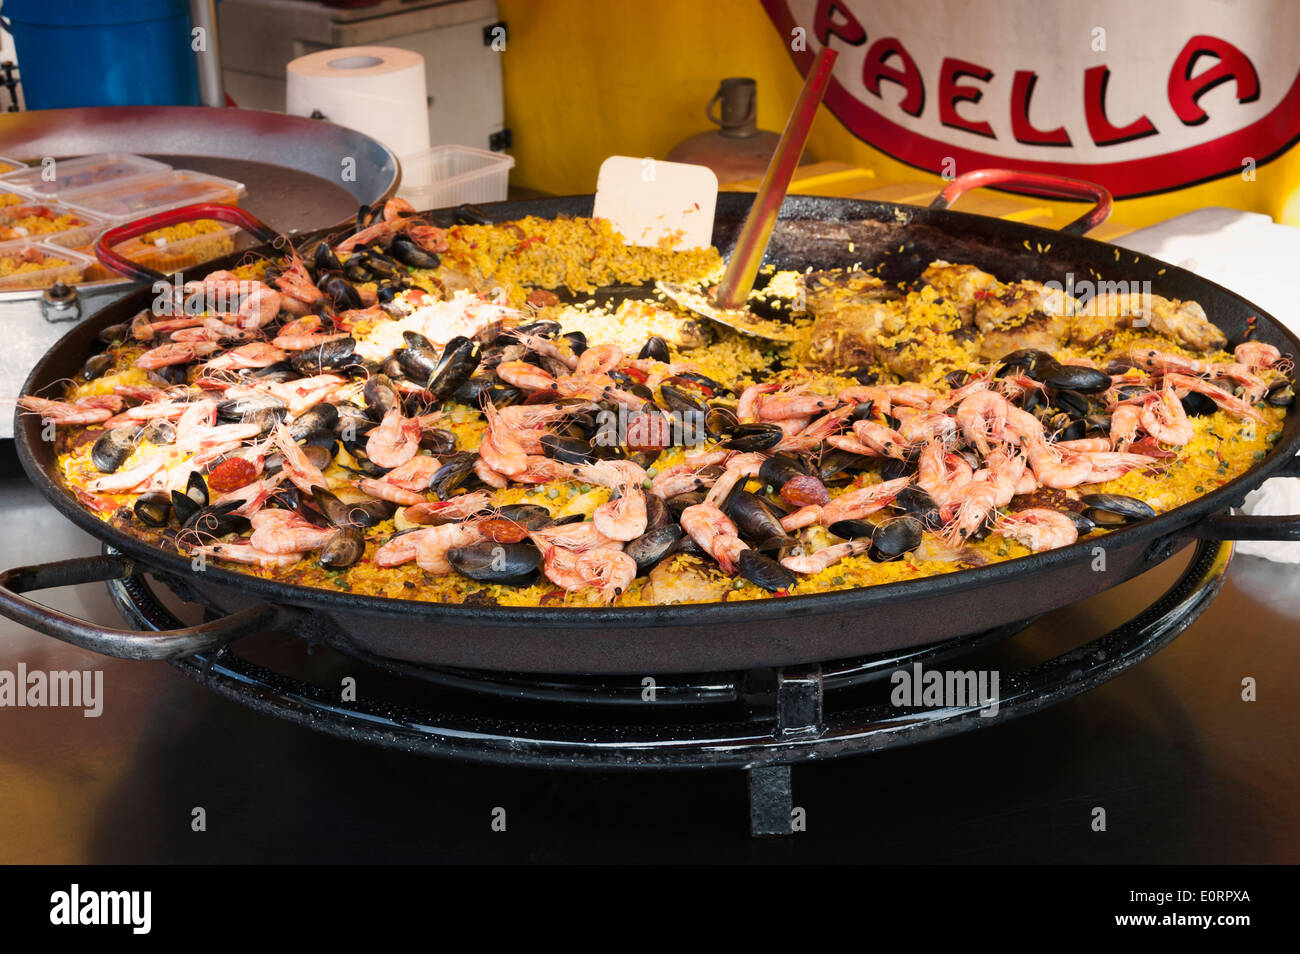 Large dish of Paella on a seafood market stall - Stock Image